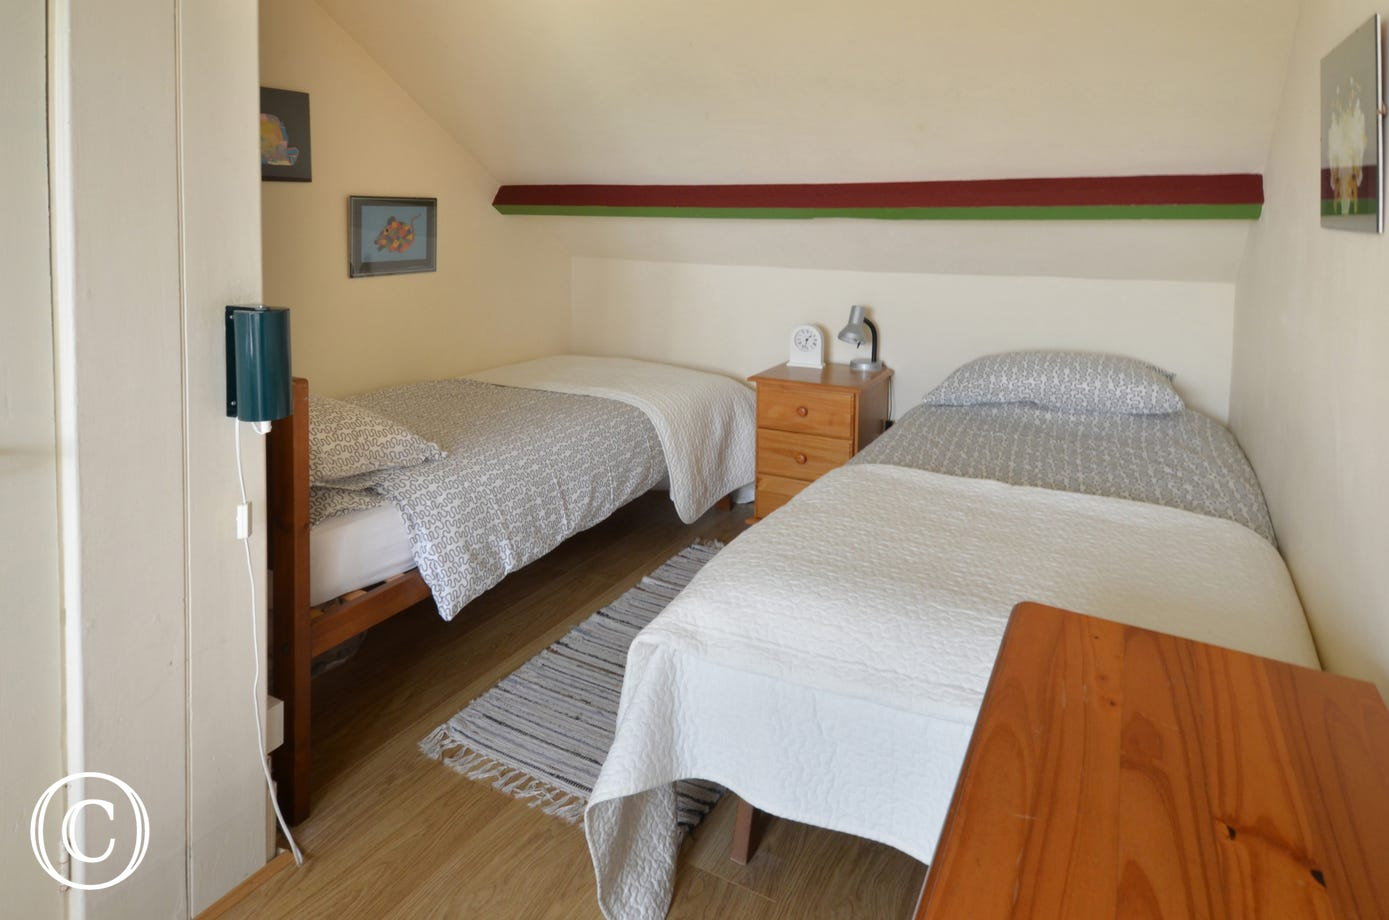 A cosy twin bedded room, ideal for the children